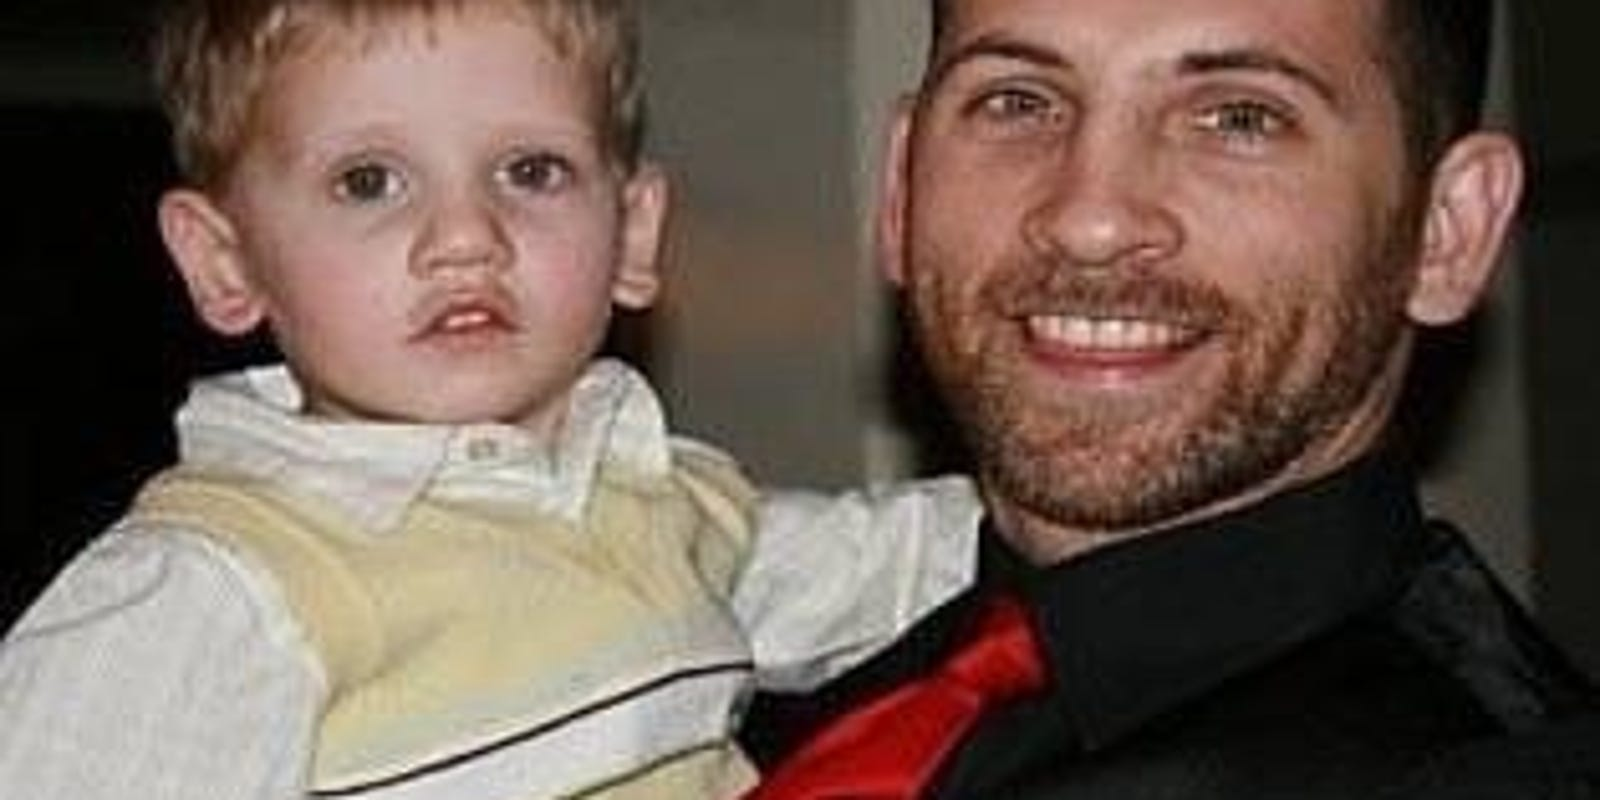 Father will run for 24 hours in Iowa City on Sunday to raise cancer funds in honor of son